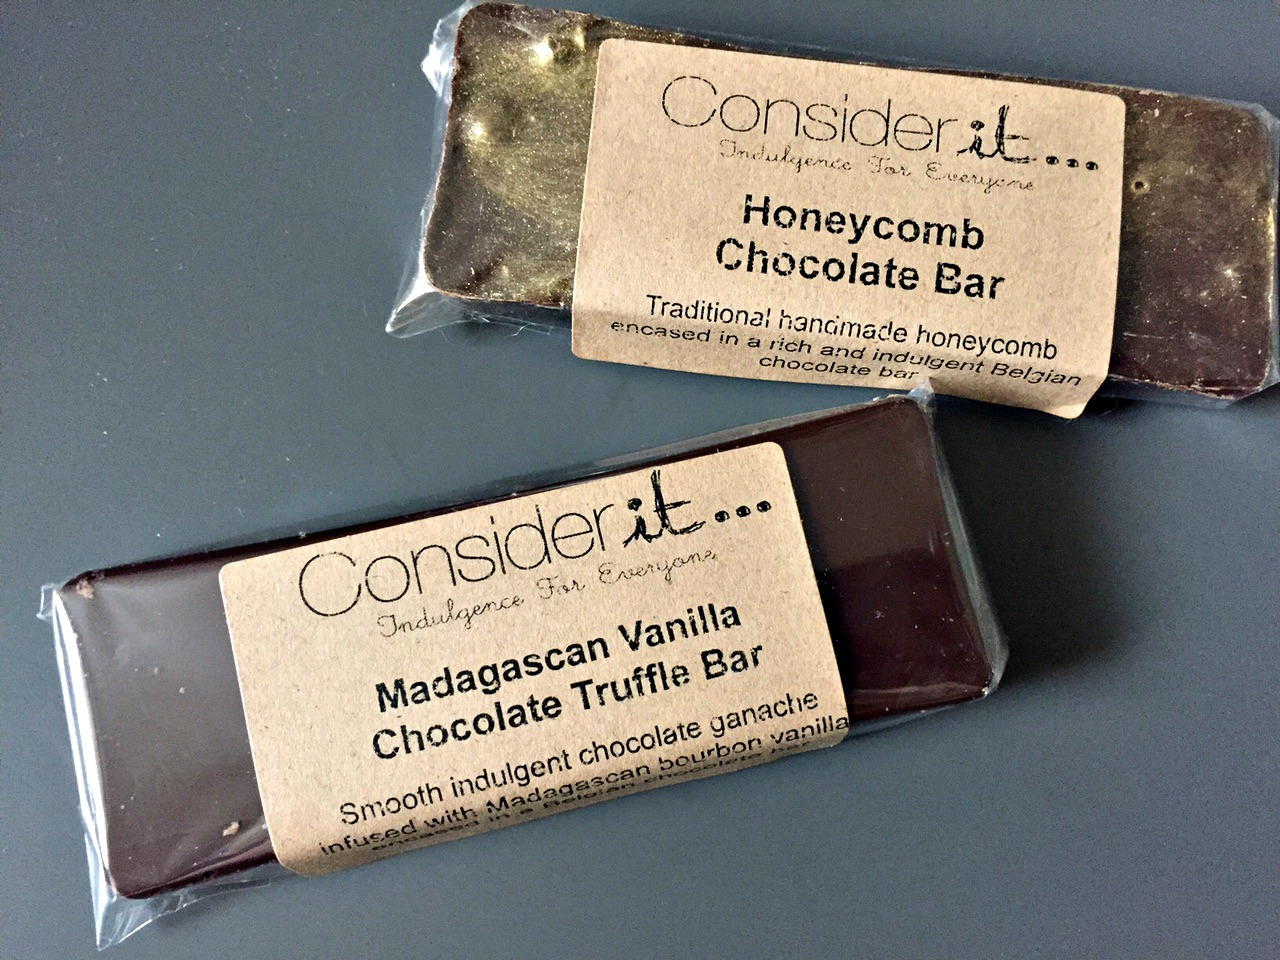 Considerit Madagascan Vanilla Chocolate Truffle Bar & Honeycomb Chocolate Bar